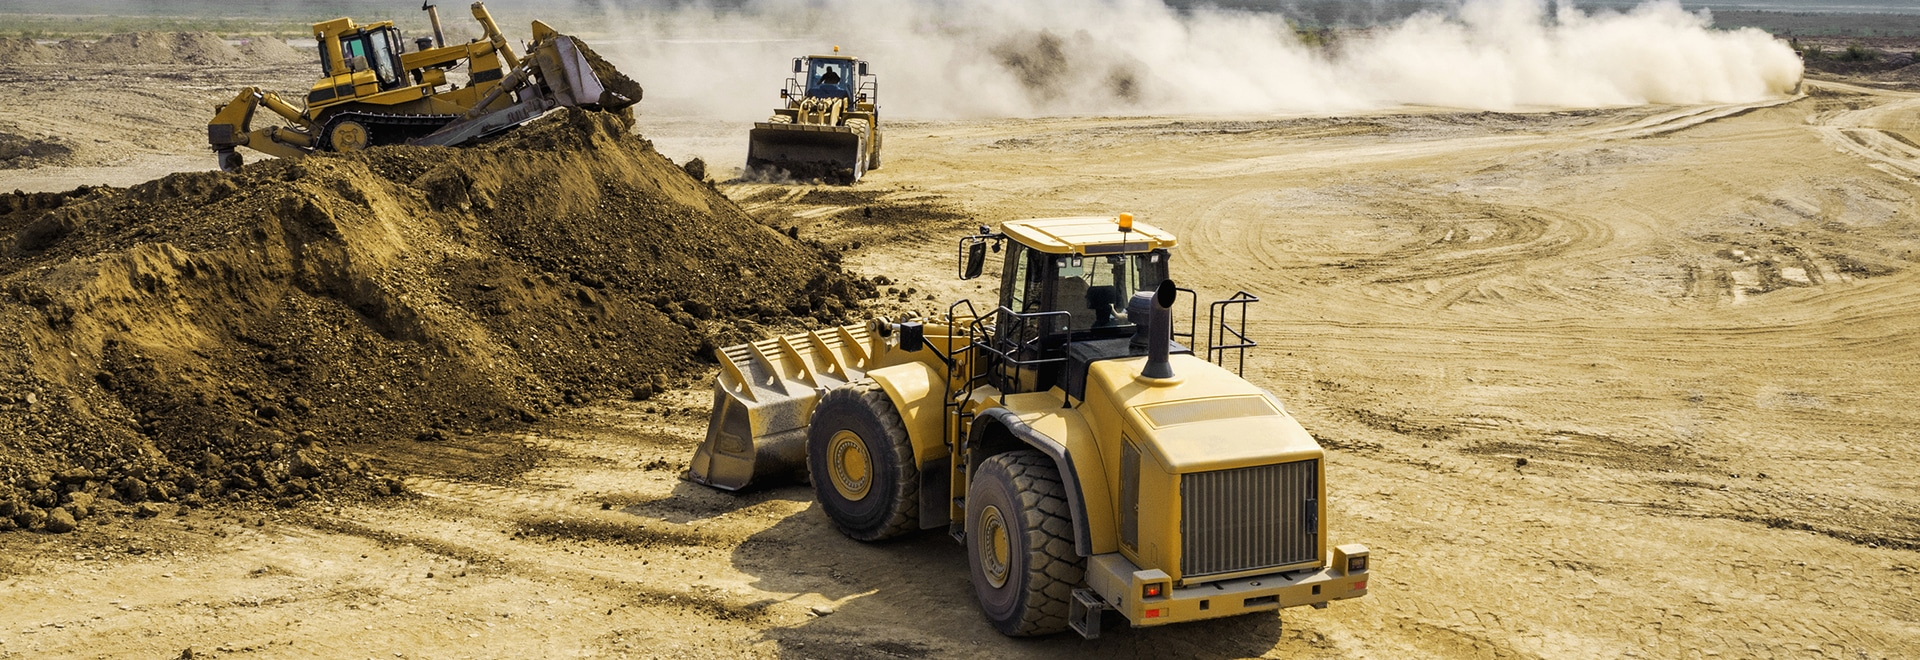 Electronic components such as embedded PCs which are used in vehicles such as dozers or excavators are exposed to extreme conditions.